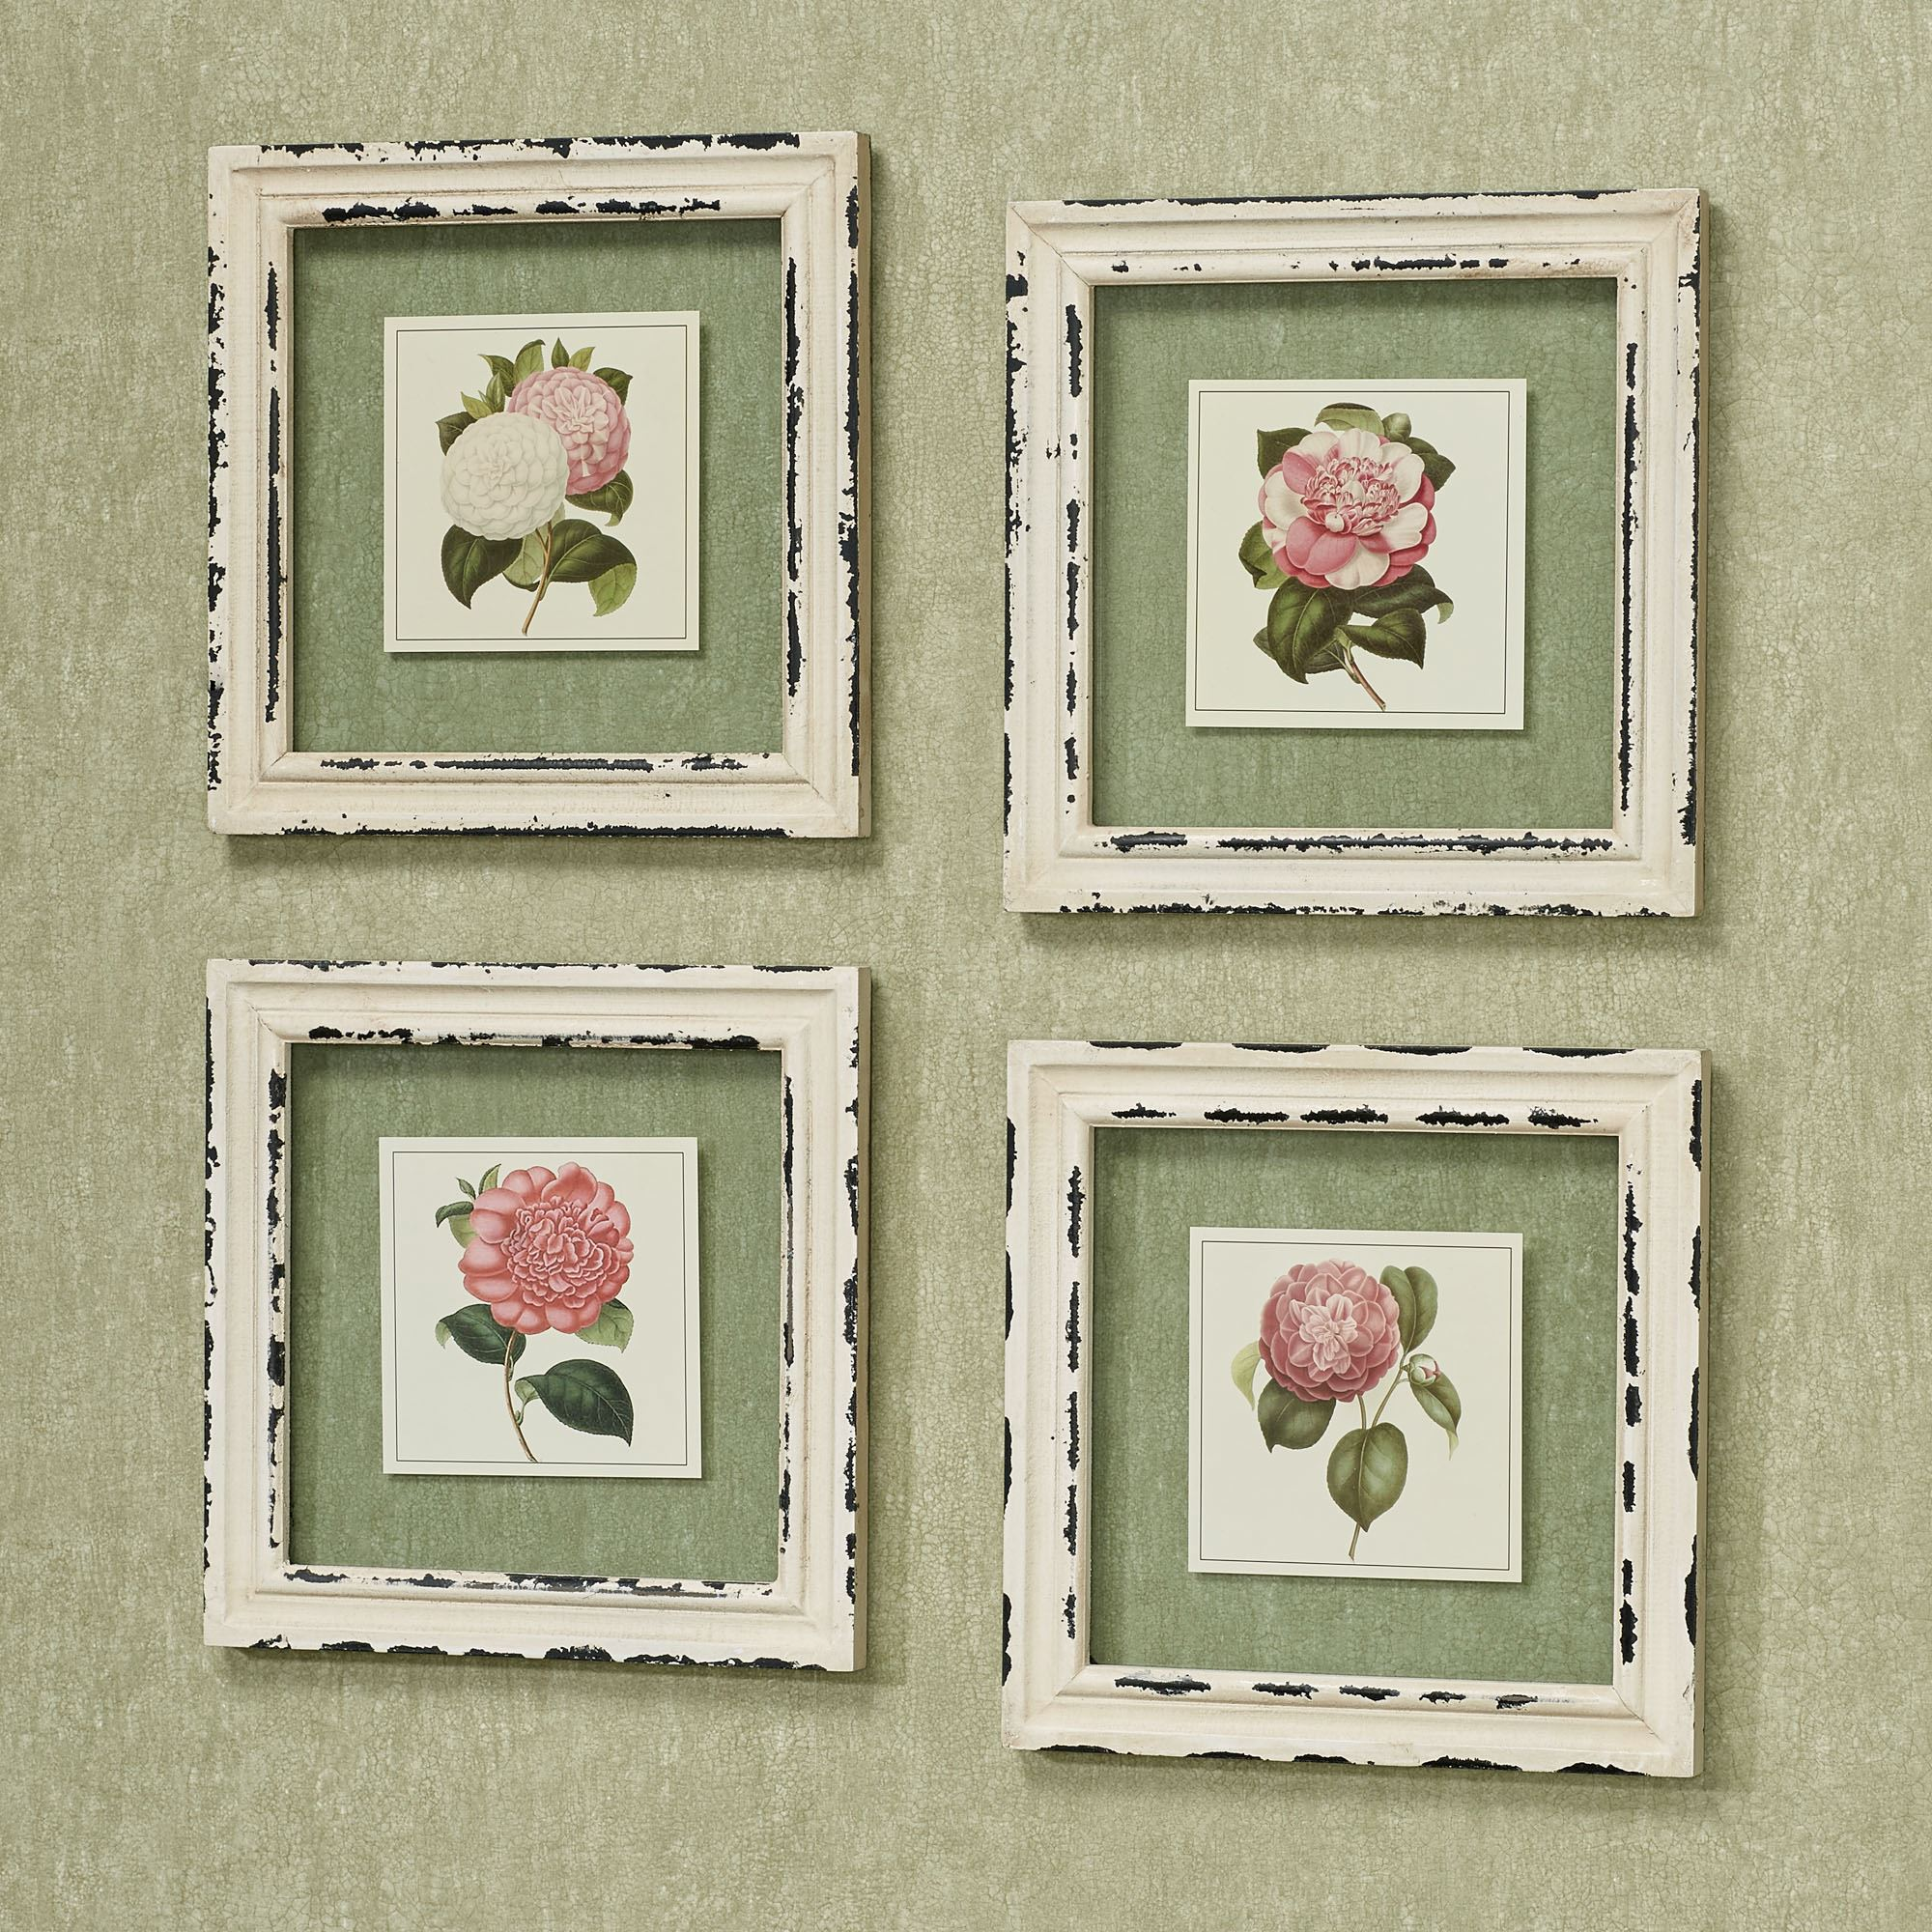 Framed art prints touch of class french rose floral clear glass framed wall art set jeuxipadfo Image collections